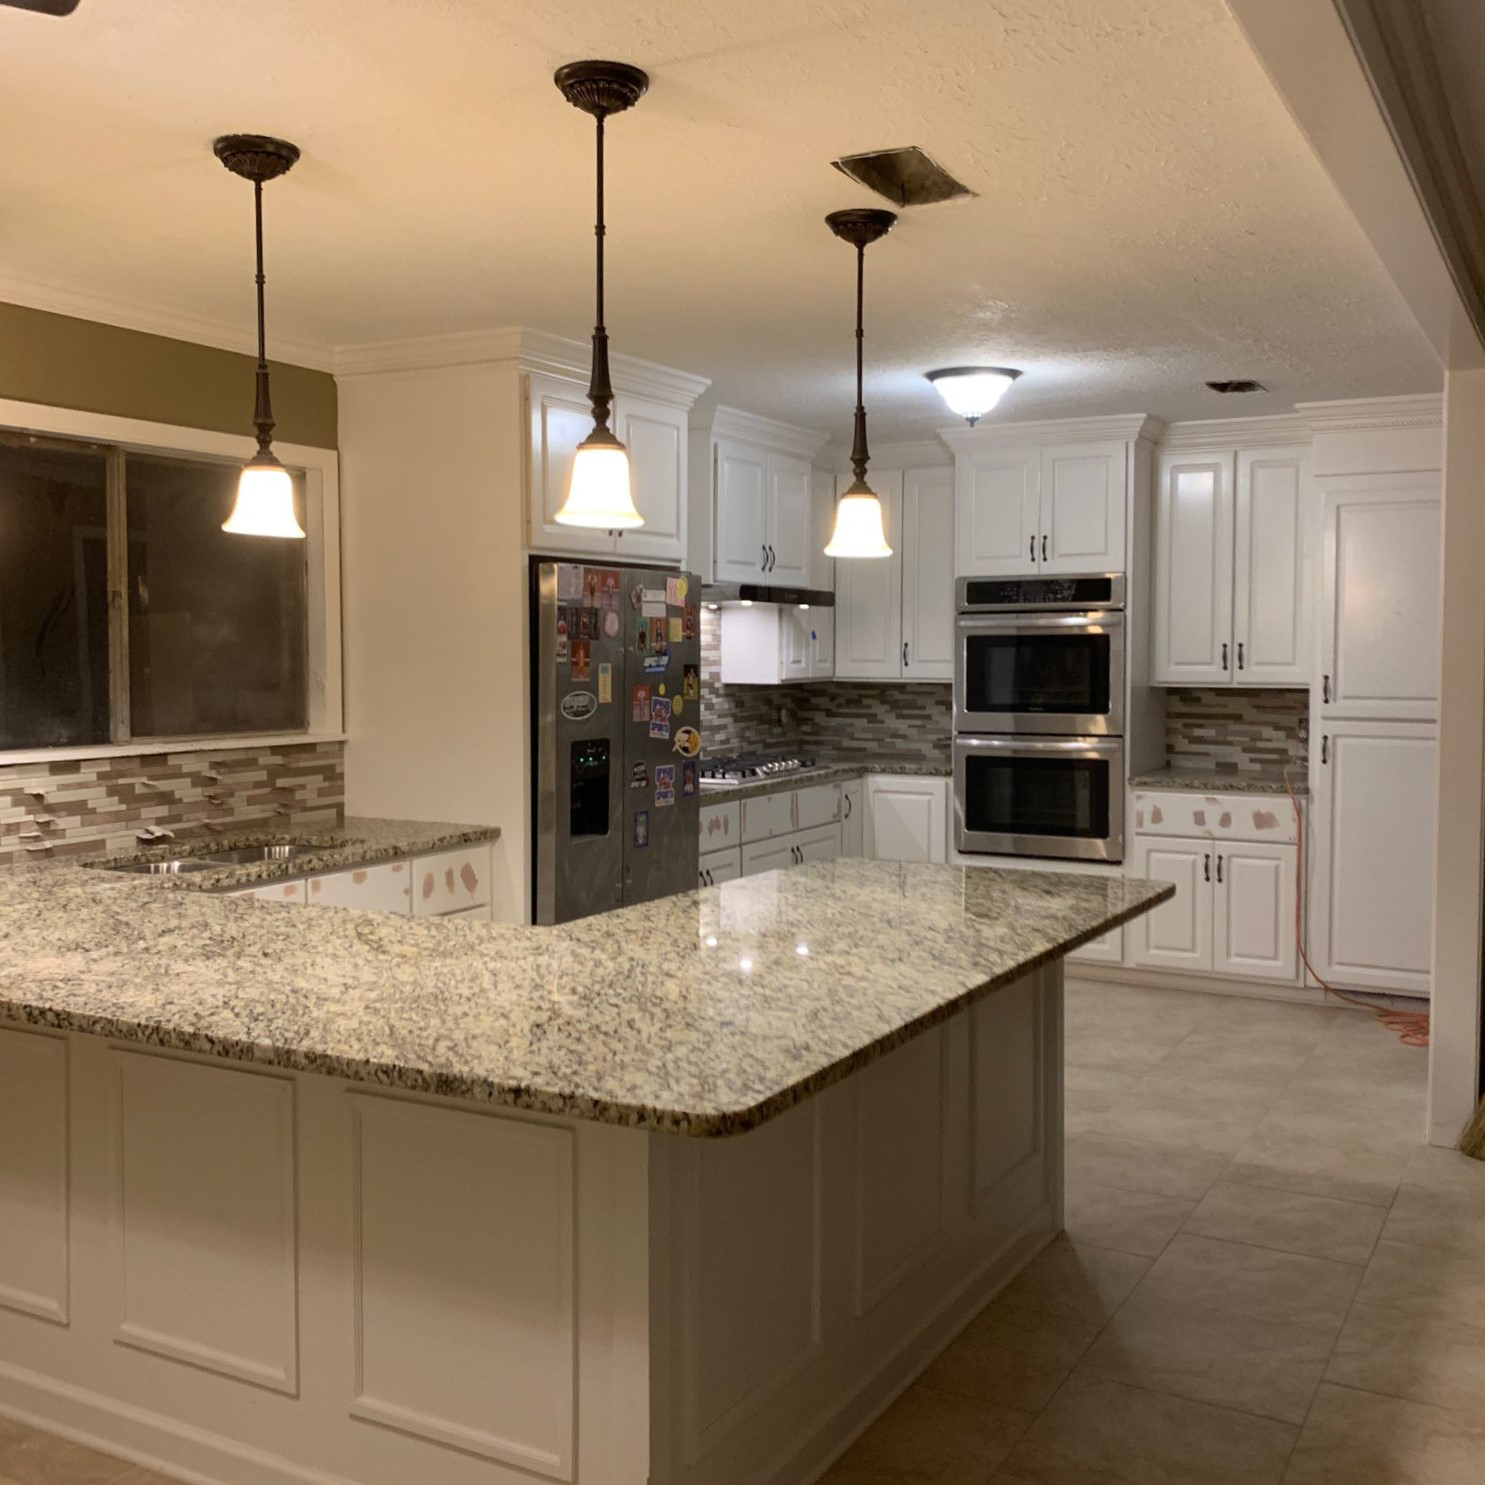 Kitchen Additions: Born Again Home Remodeling And Roofing